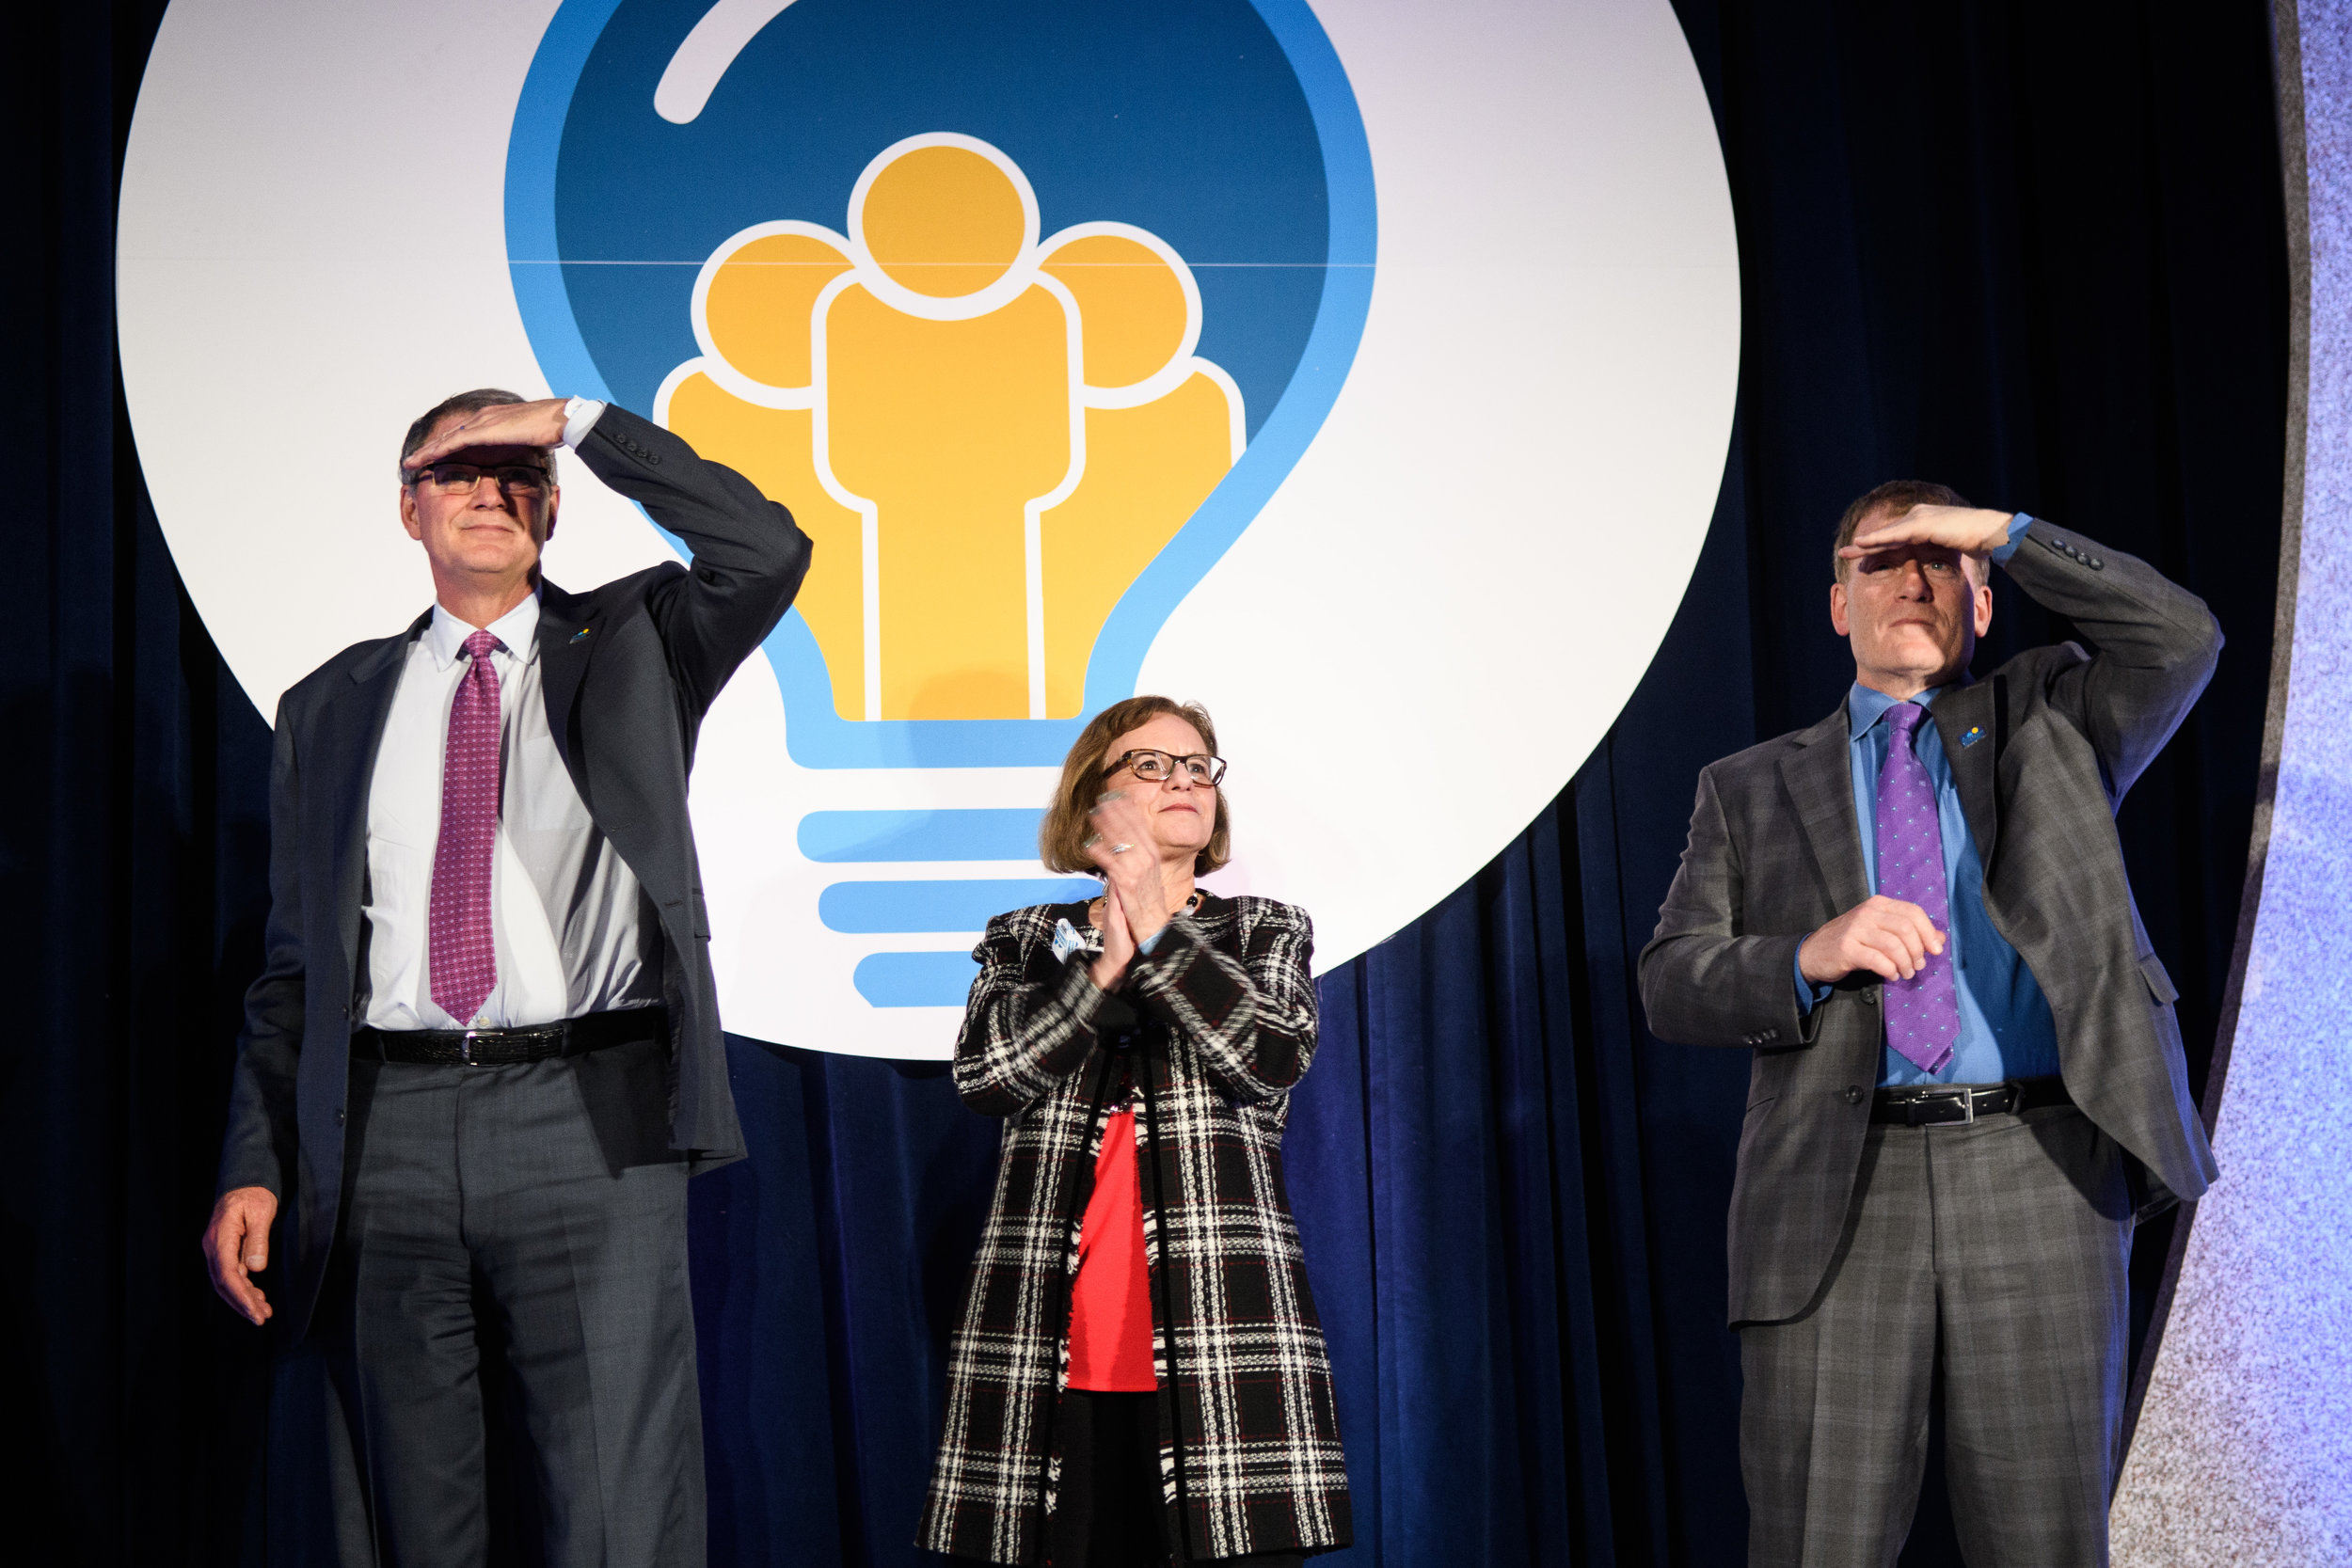 Photograph of conference speakers searching the audience. Washington, DC.